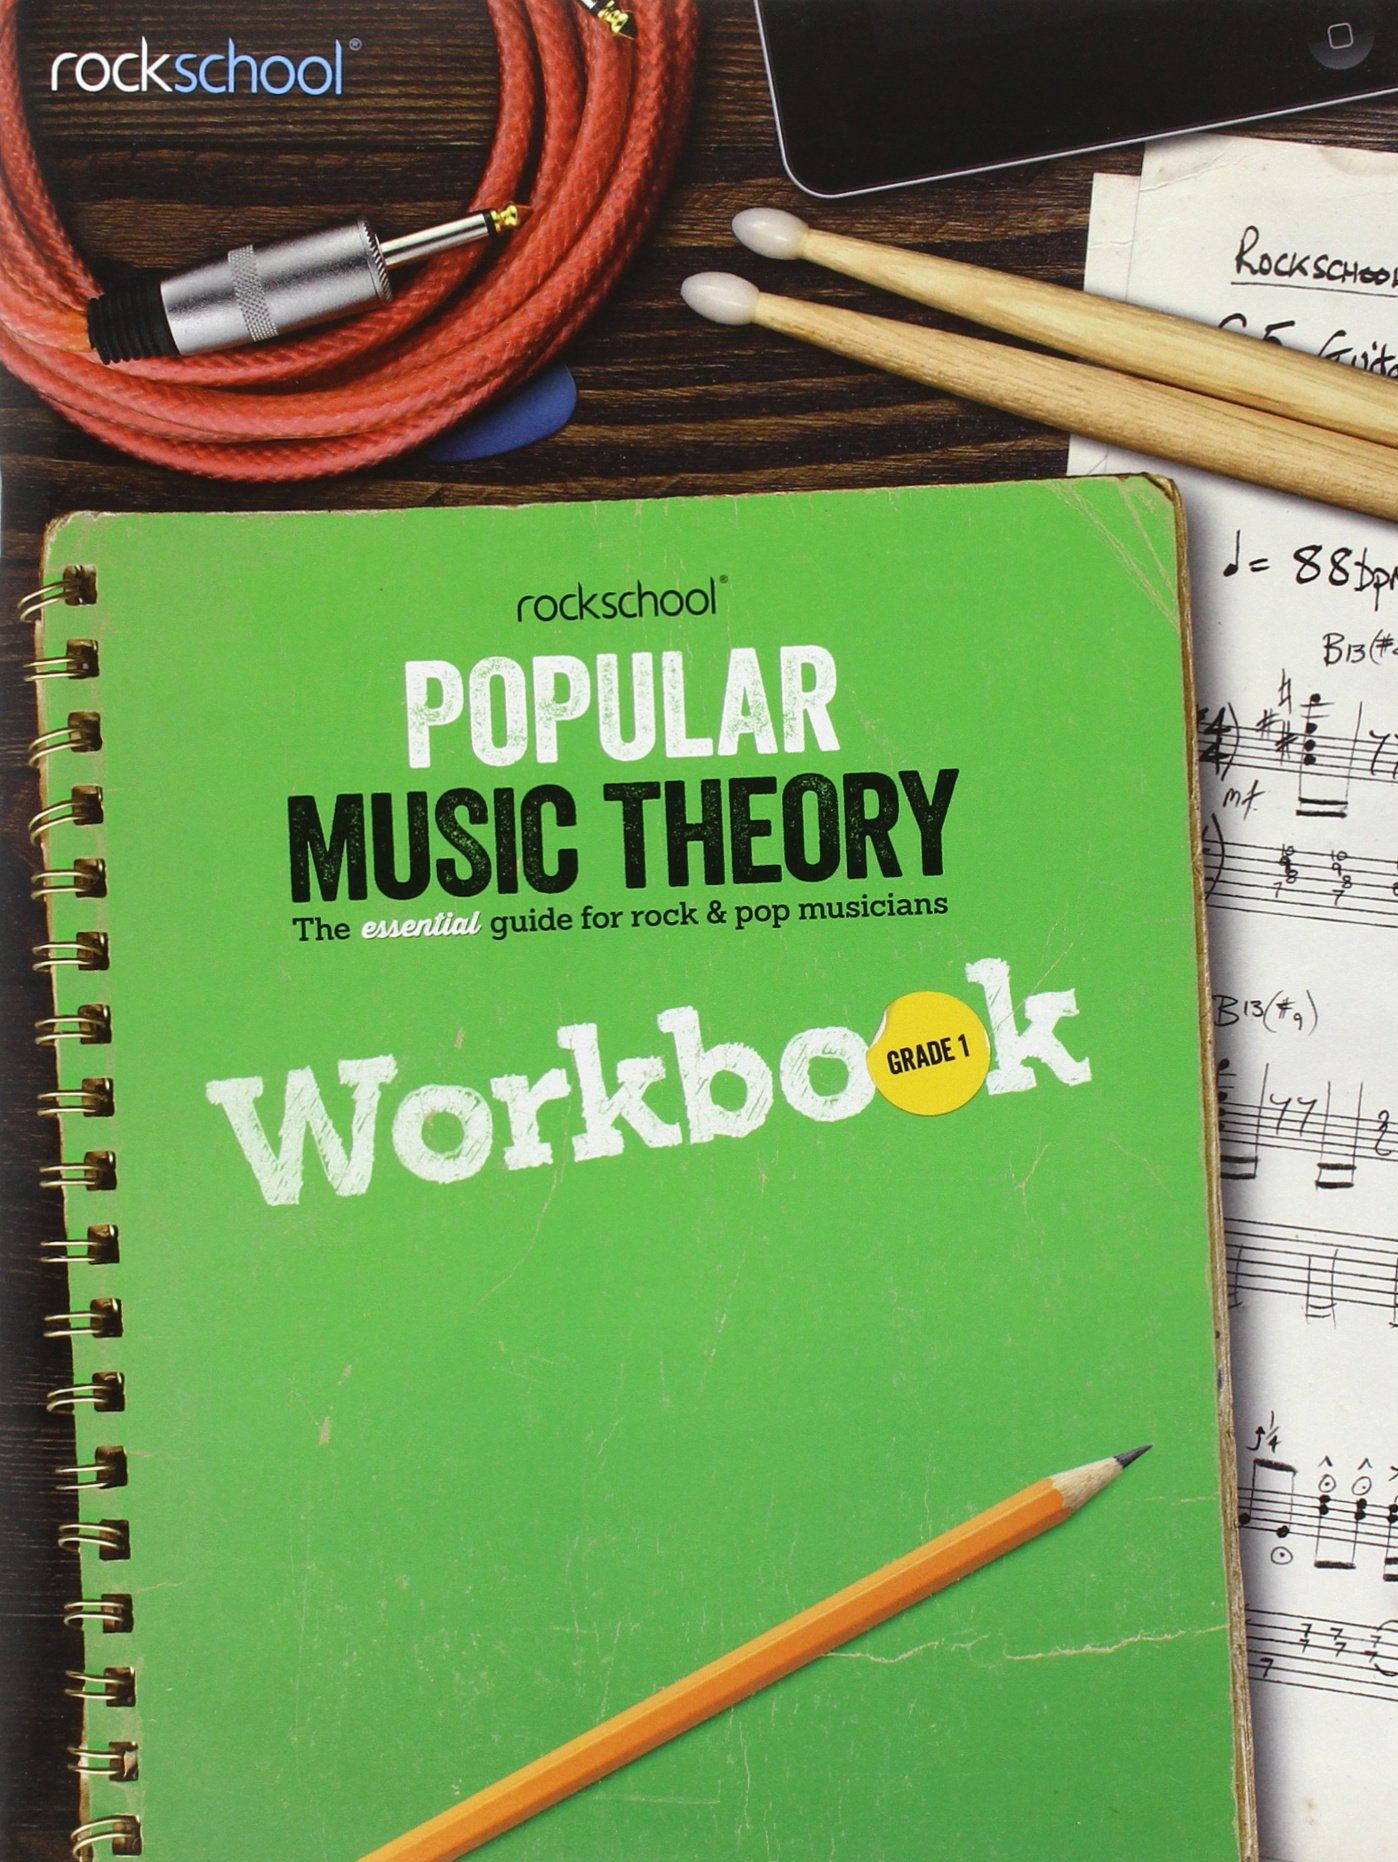 Rockschool Popular Music Theory Workbook Grade 1 Nik Basic Electrical Wiring Preston Libros En Idiomas Extranjeros